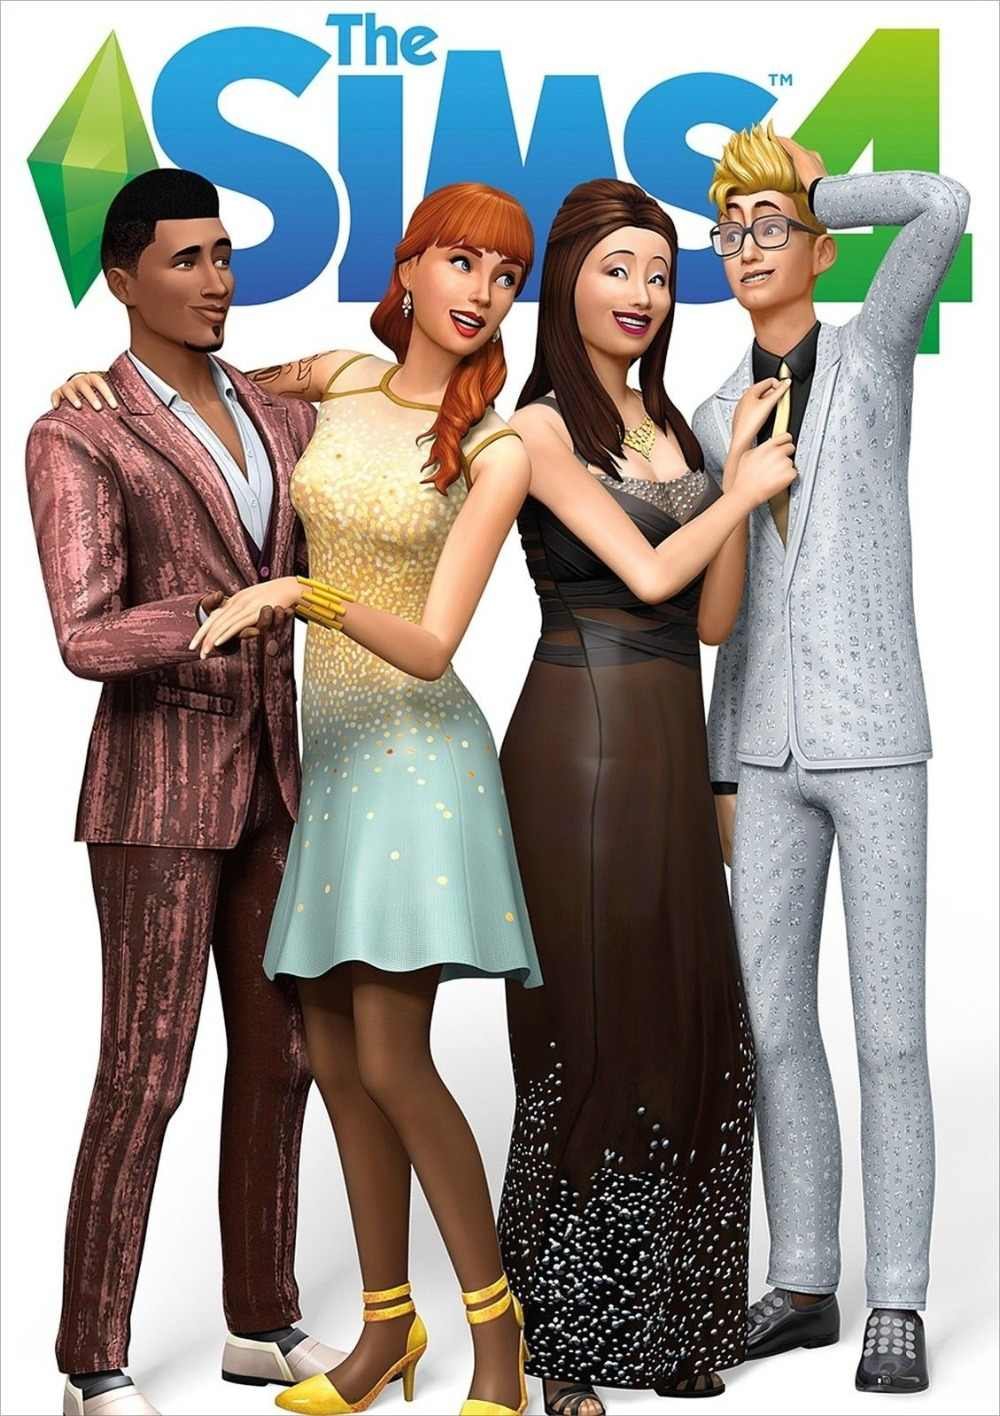 The Sims 4 Poster, New Game, PC Xbox SILK POSTER Decorative Wall painting 24x36inch